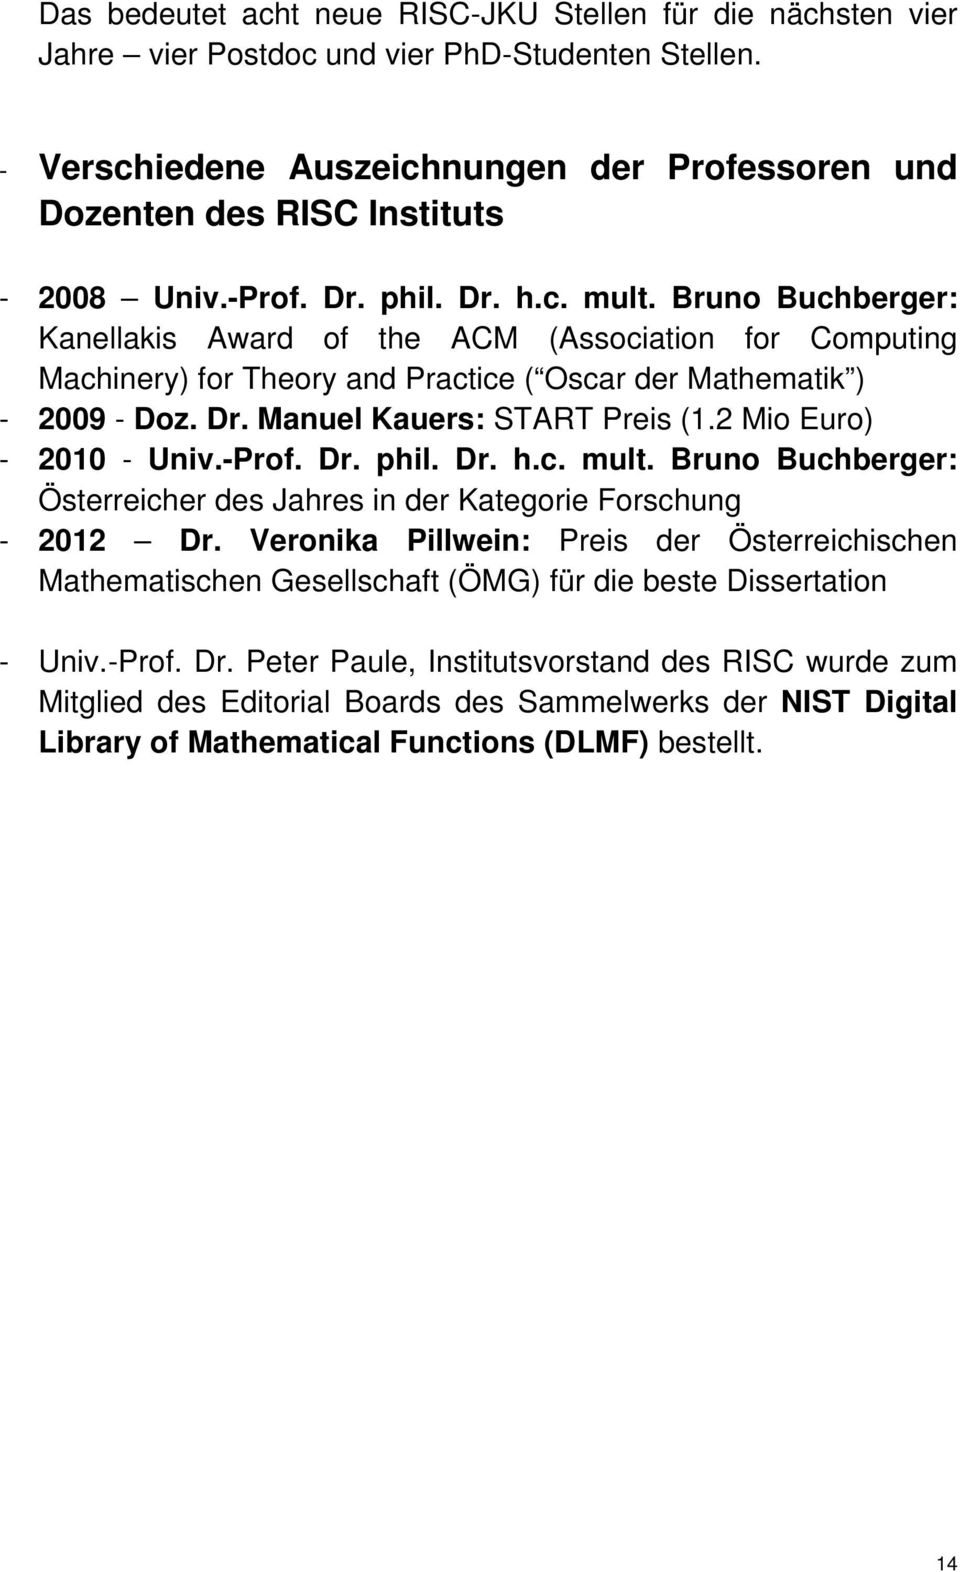 Bruno Buchberger: Kanellakis Award of the ACM (Association for Computing Machinery) for Theory and Practice ( Oscar der Mathematik ) - 2009 - Doz. Dr. Manuel Kauers: START Preis (1.